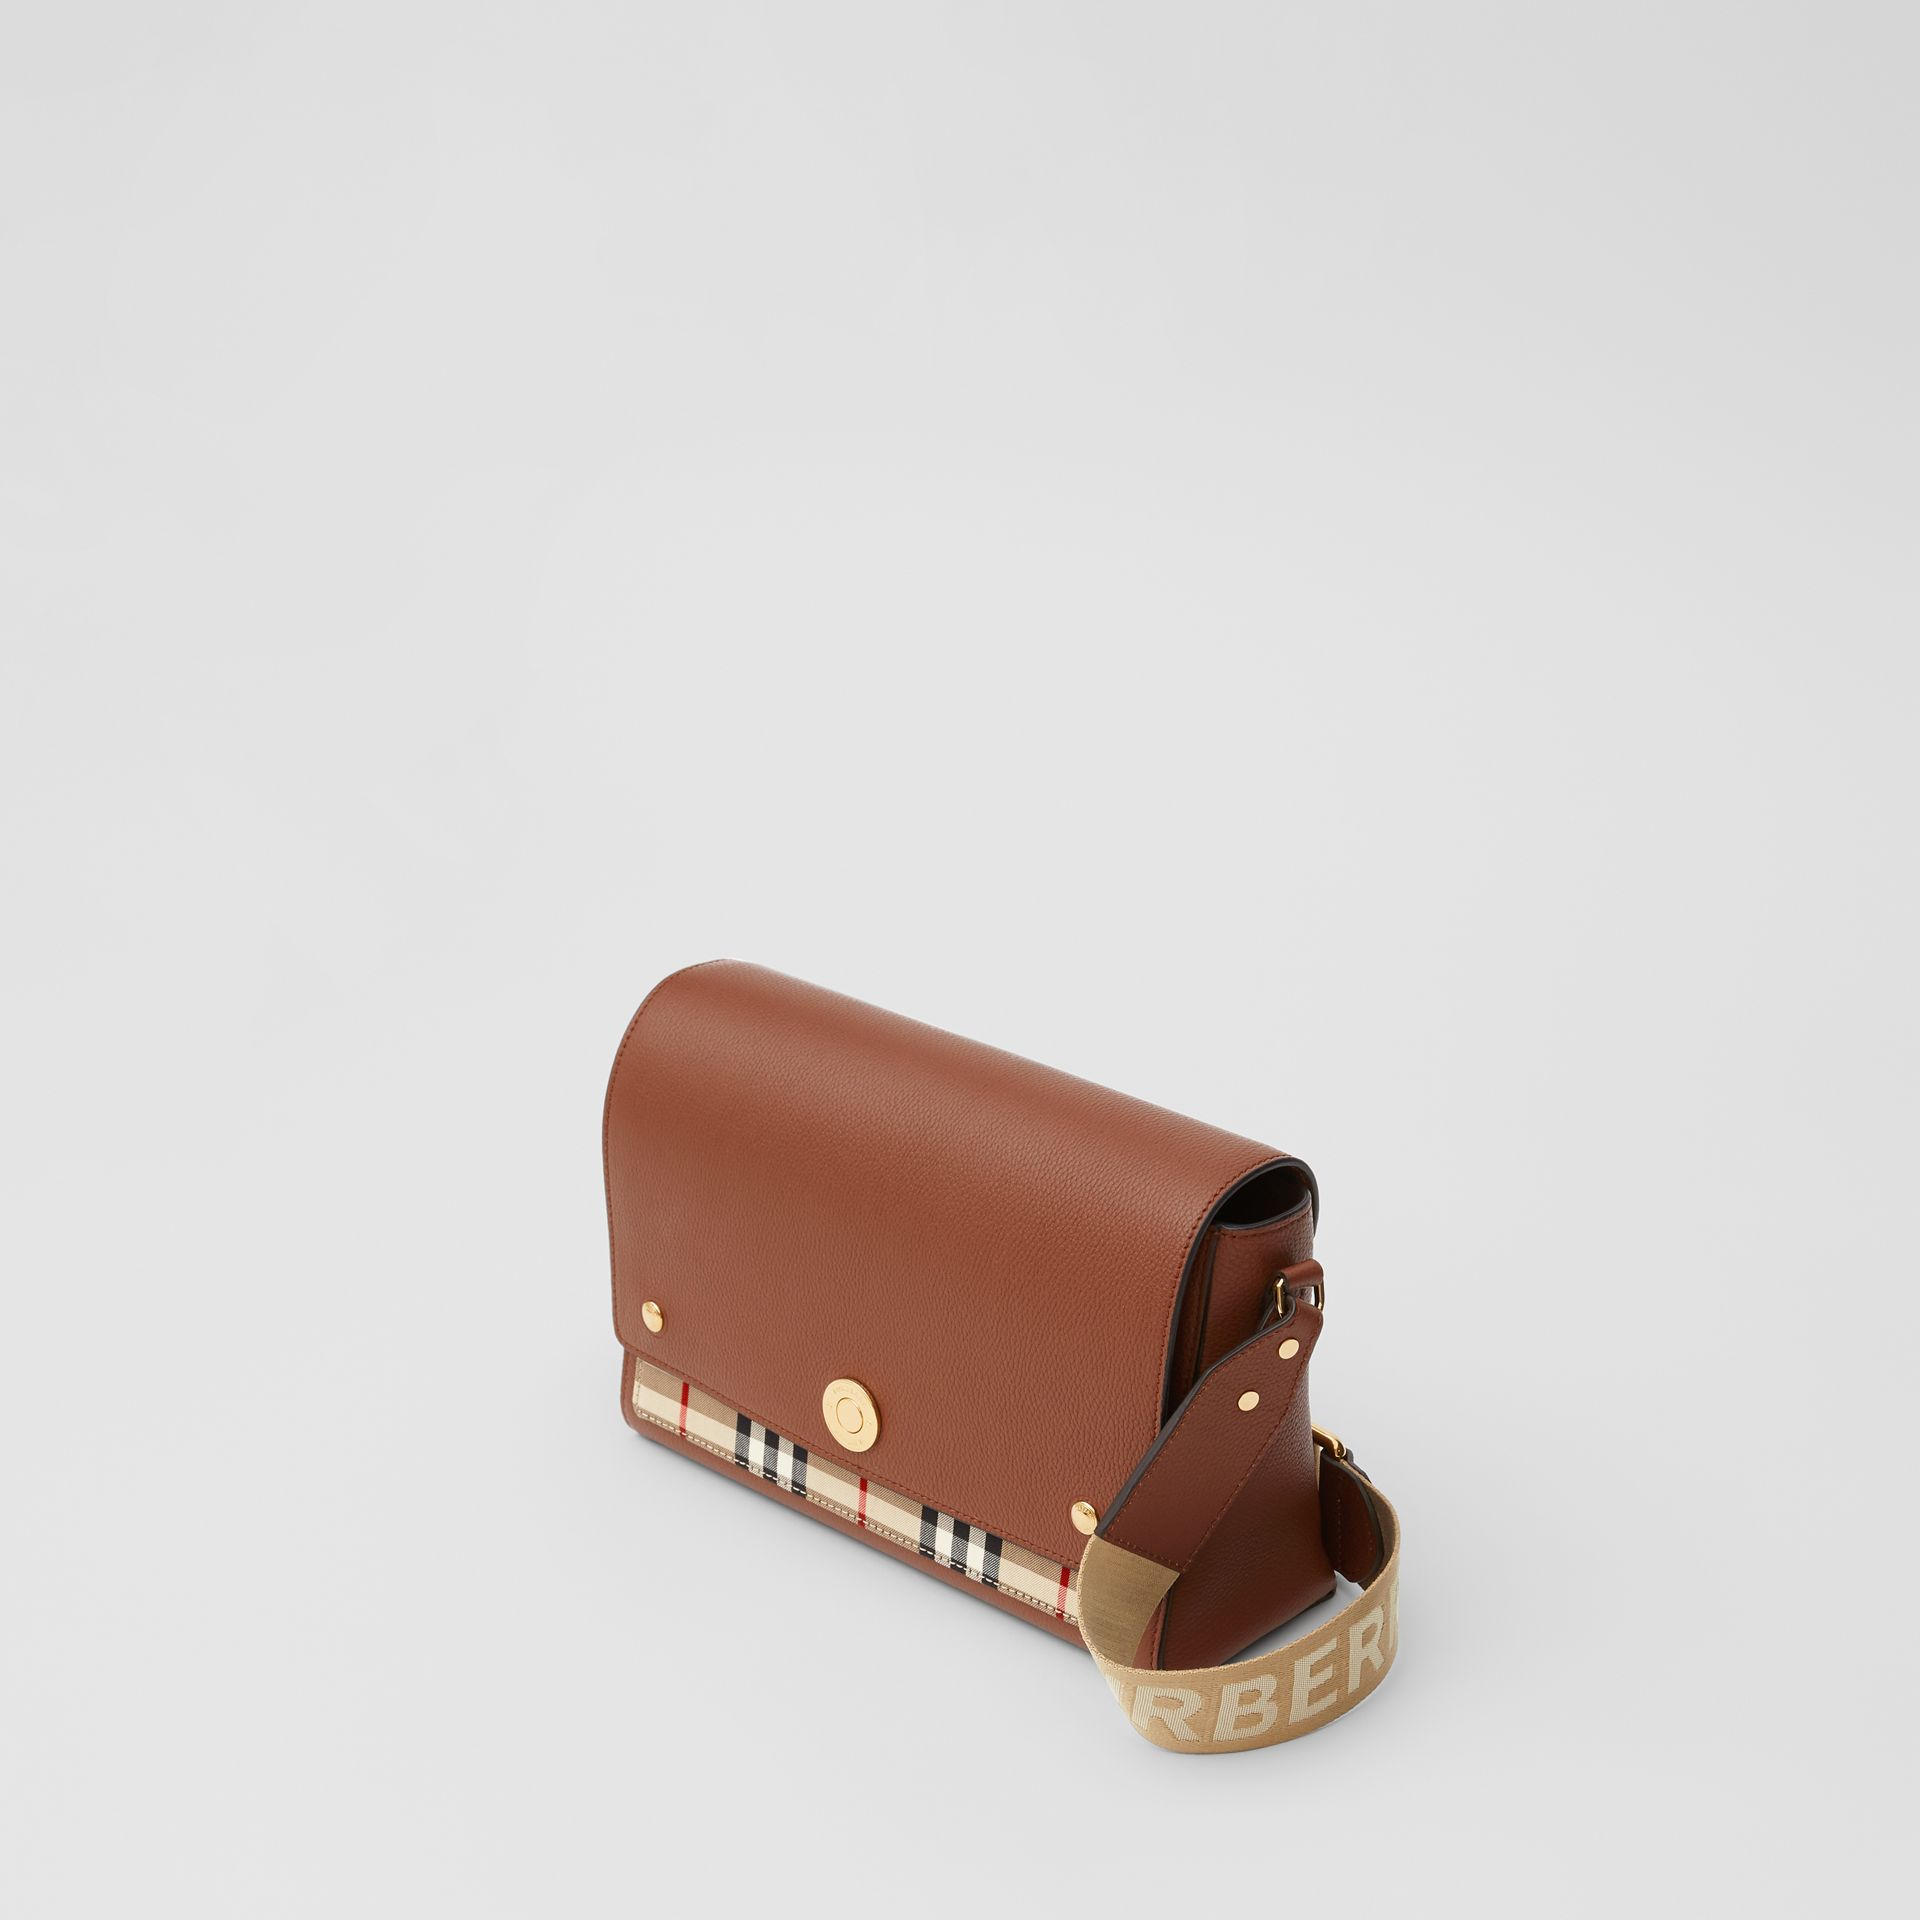 Leather and Vintage Check Note Crossbody Bag in Tan - Women | Burberry United States - gallery image 3